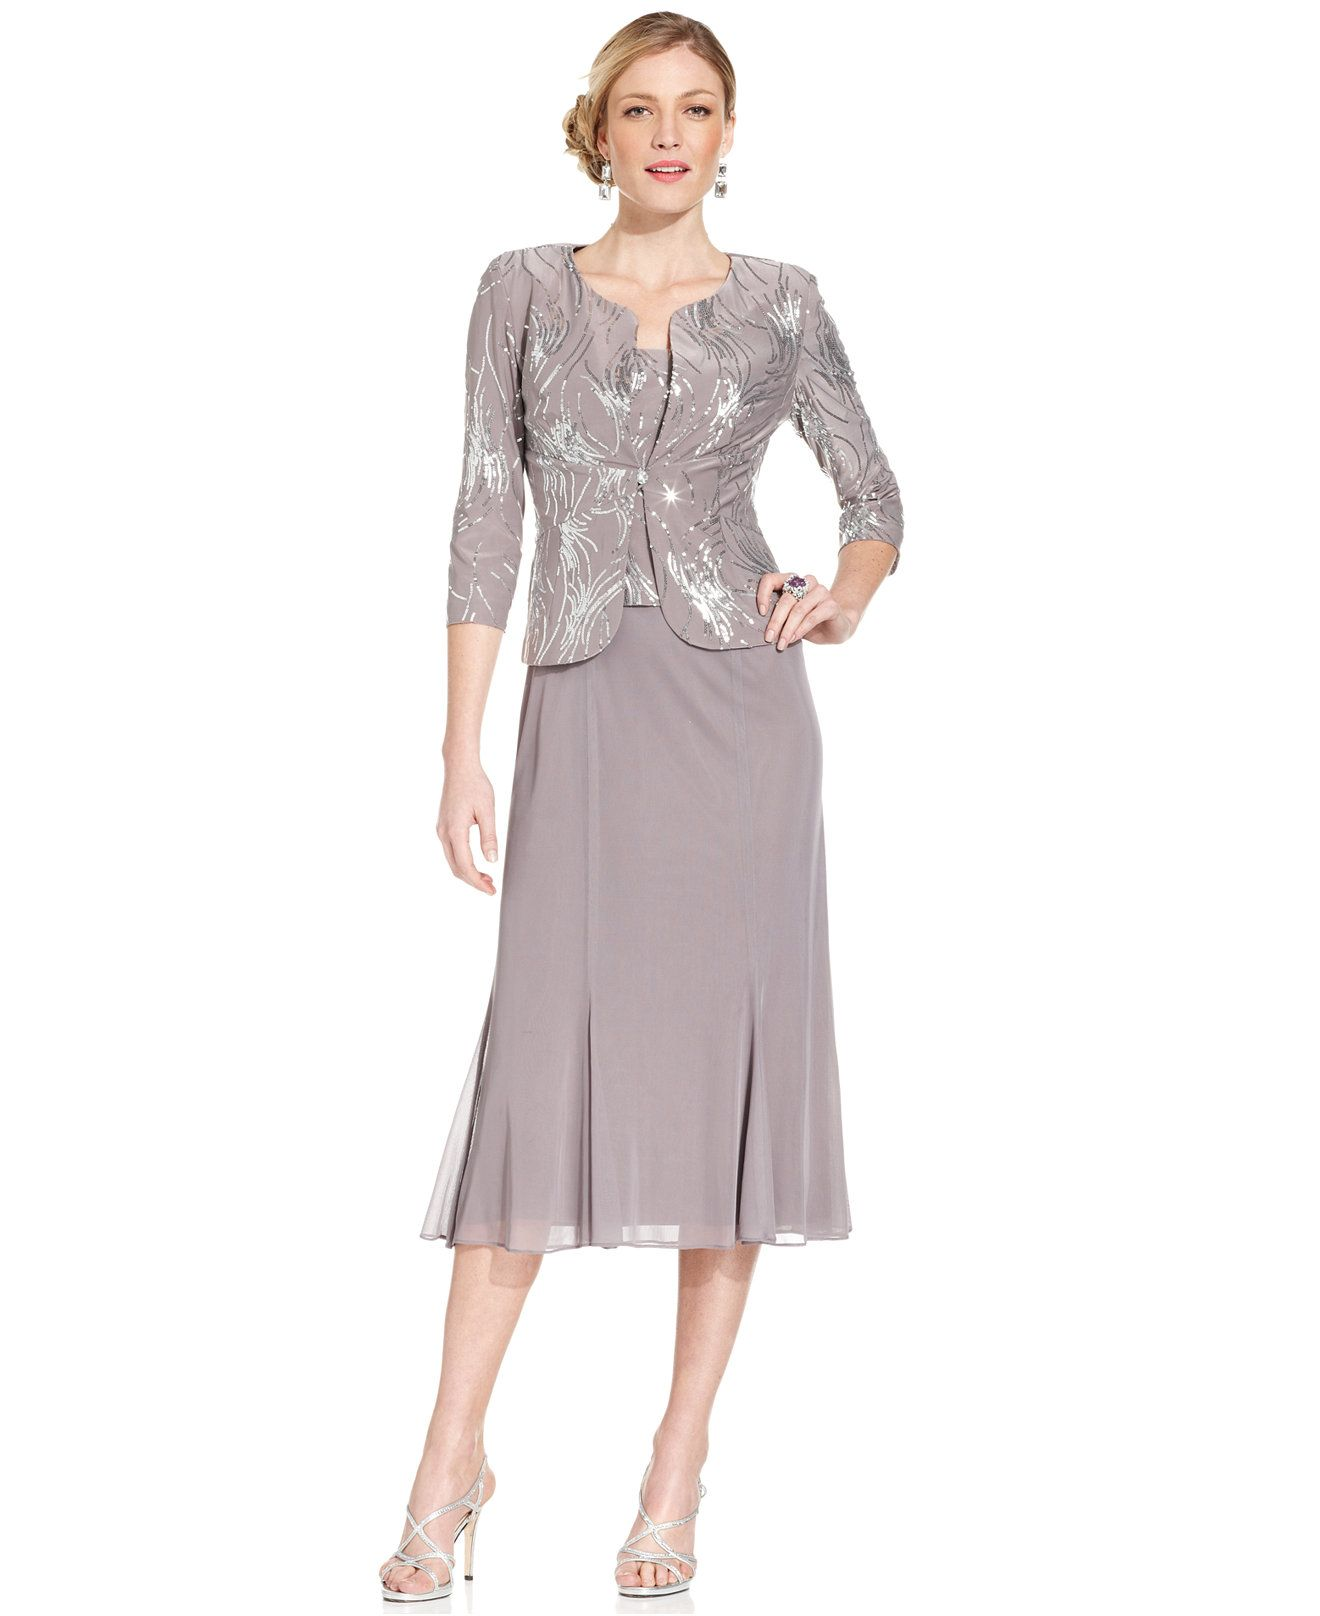 f1a7d2531274c Alex Evenings Petite Sleeveless Sequin Midi Dress and Jacket - Mother of  the Bride - Women - Macy's